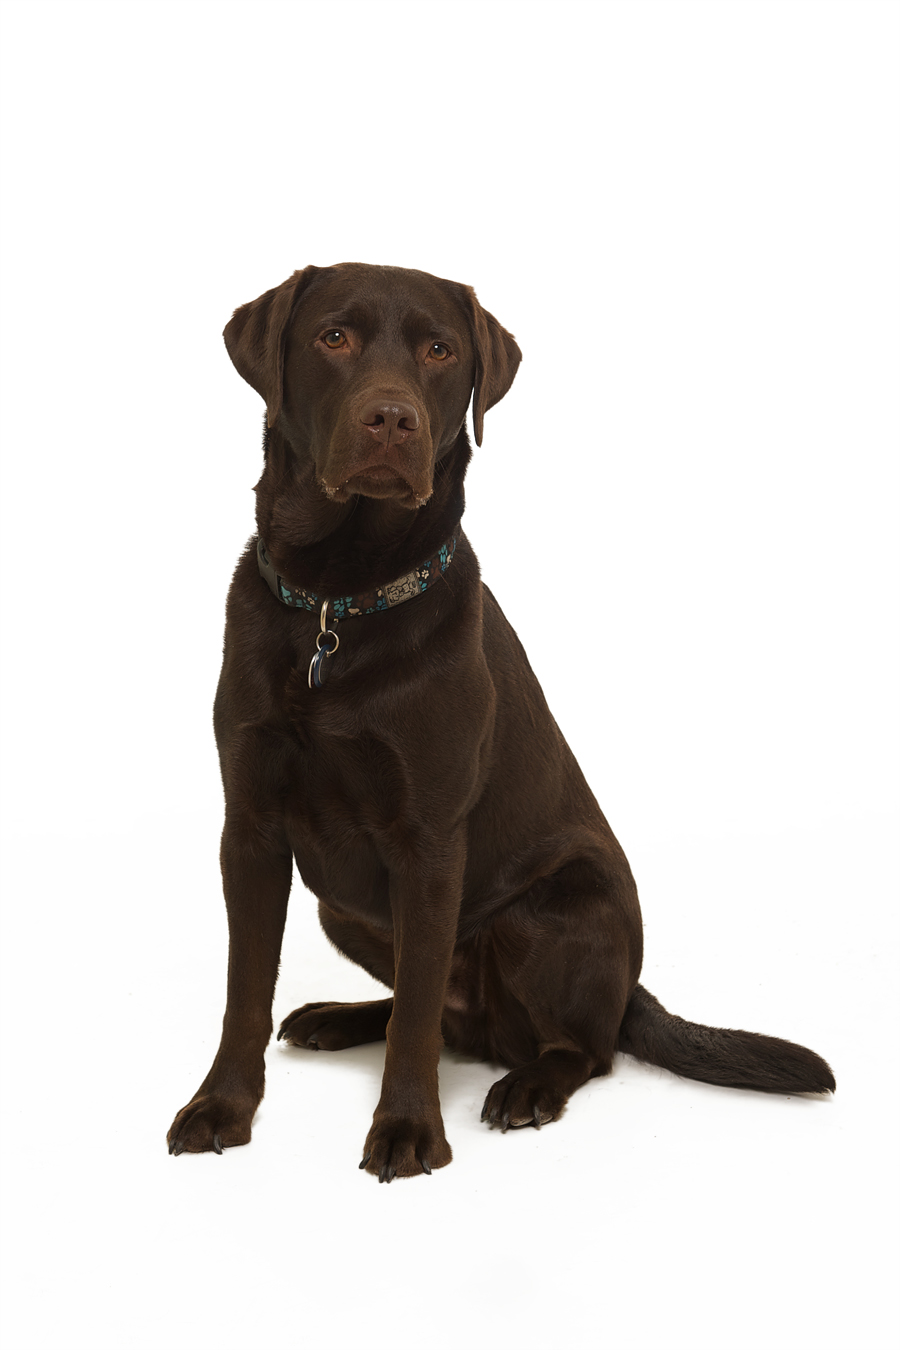 Blue has had a long and successful career with the IHD security detail. He fills his days chasing squirrels,taking naps by the front door, and going along on field review when his services are required.